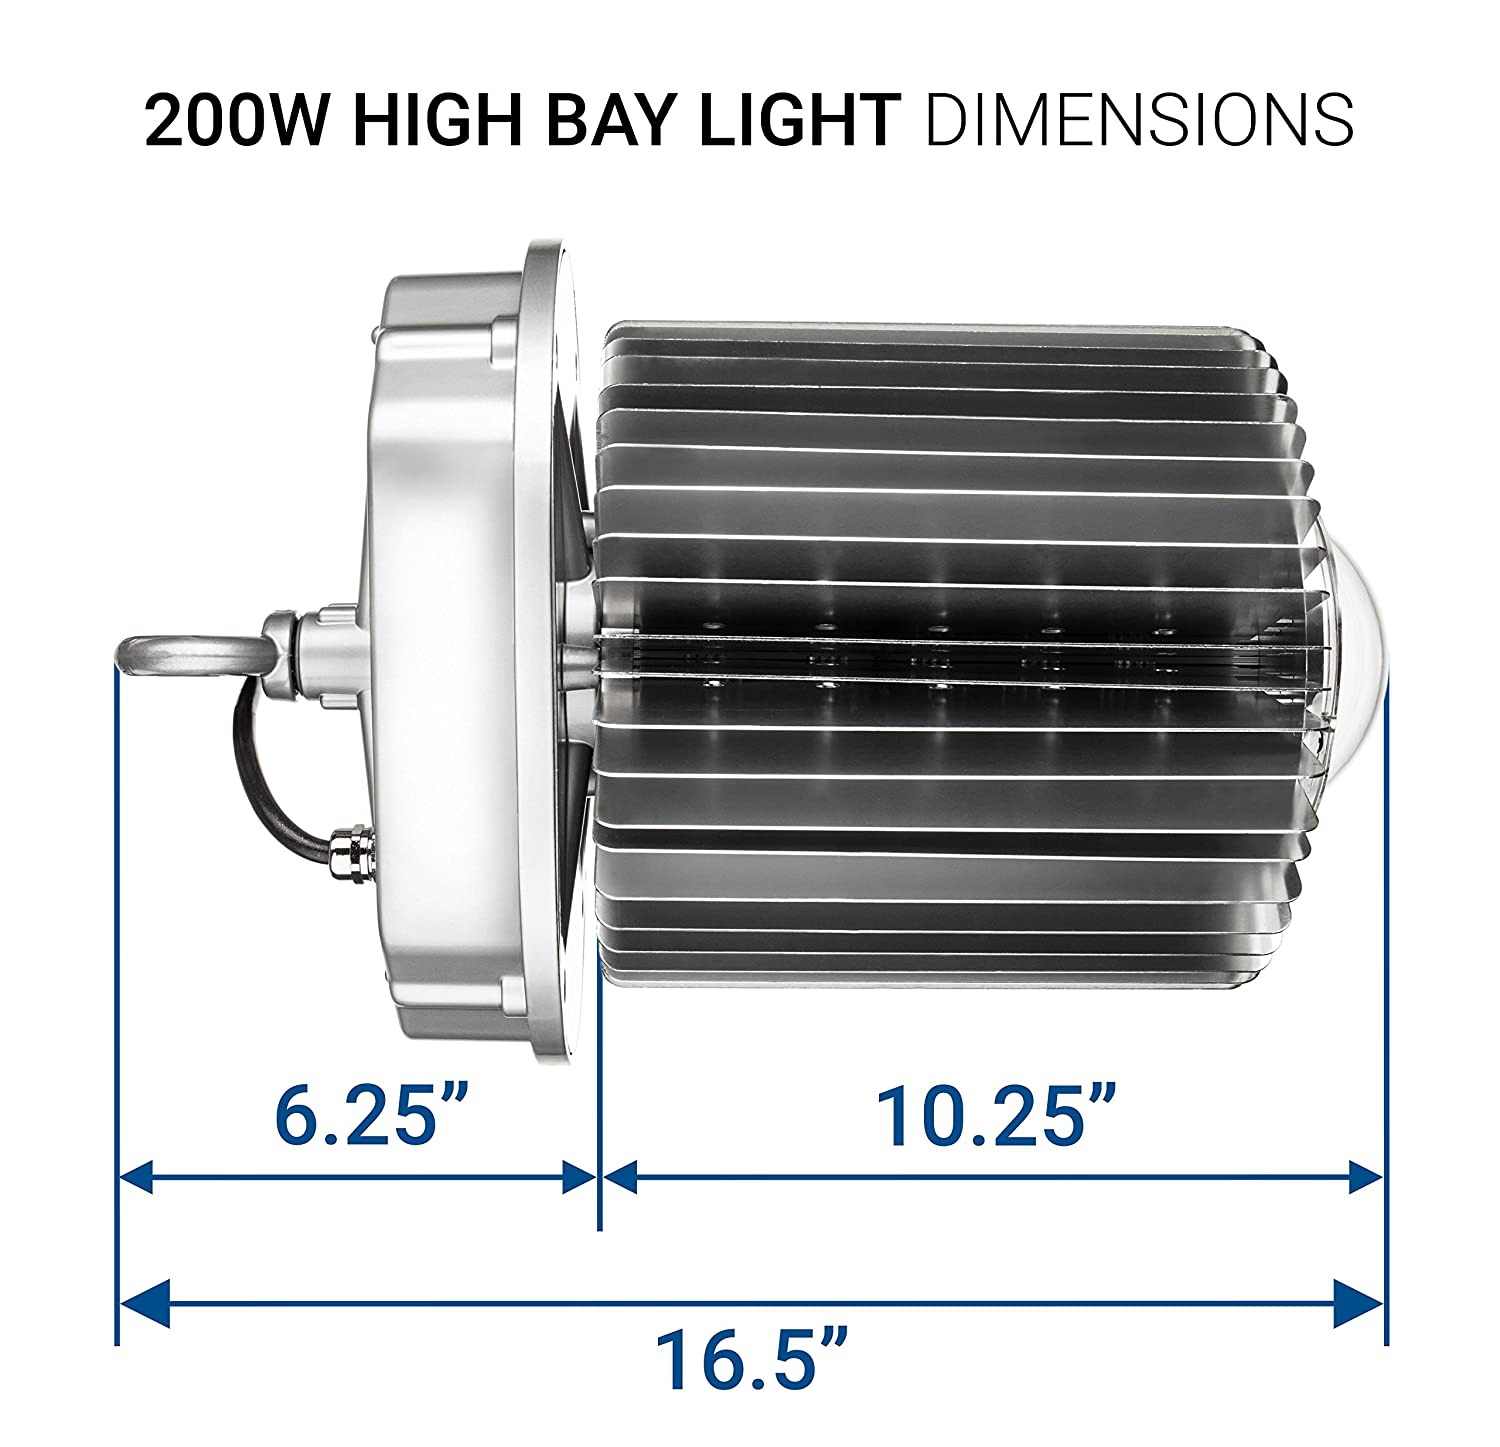 18,000 lumens Indoor Area Lighting DLC 4.2 Qualified /& UL Certified HyperBay200W-50 Crystal White Glow 5000K 800W HID//HPS equivalent 200W Free Reflector Upon Request Inc Hyperikon LED High Bay Light